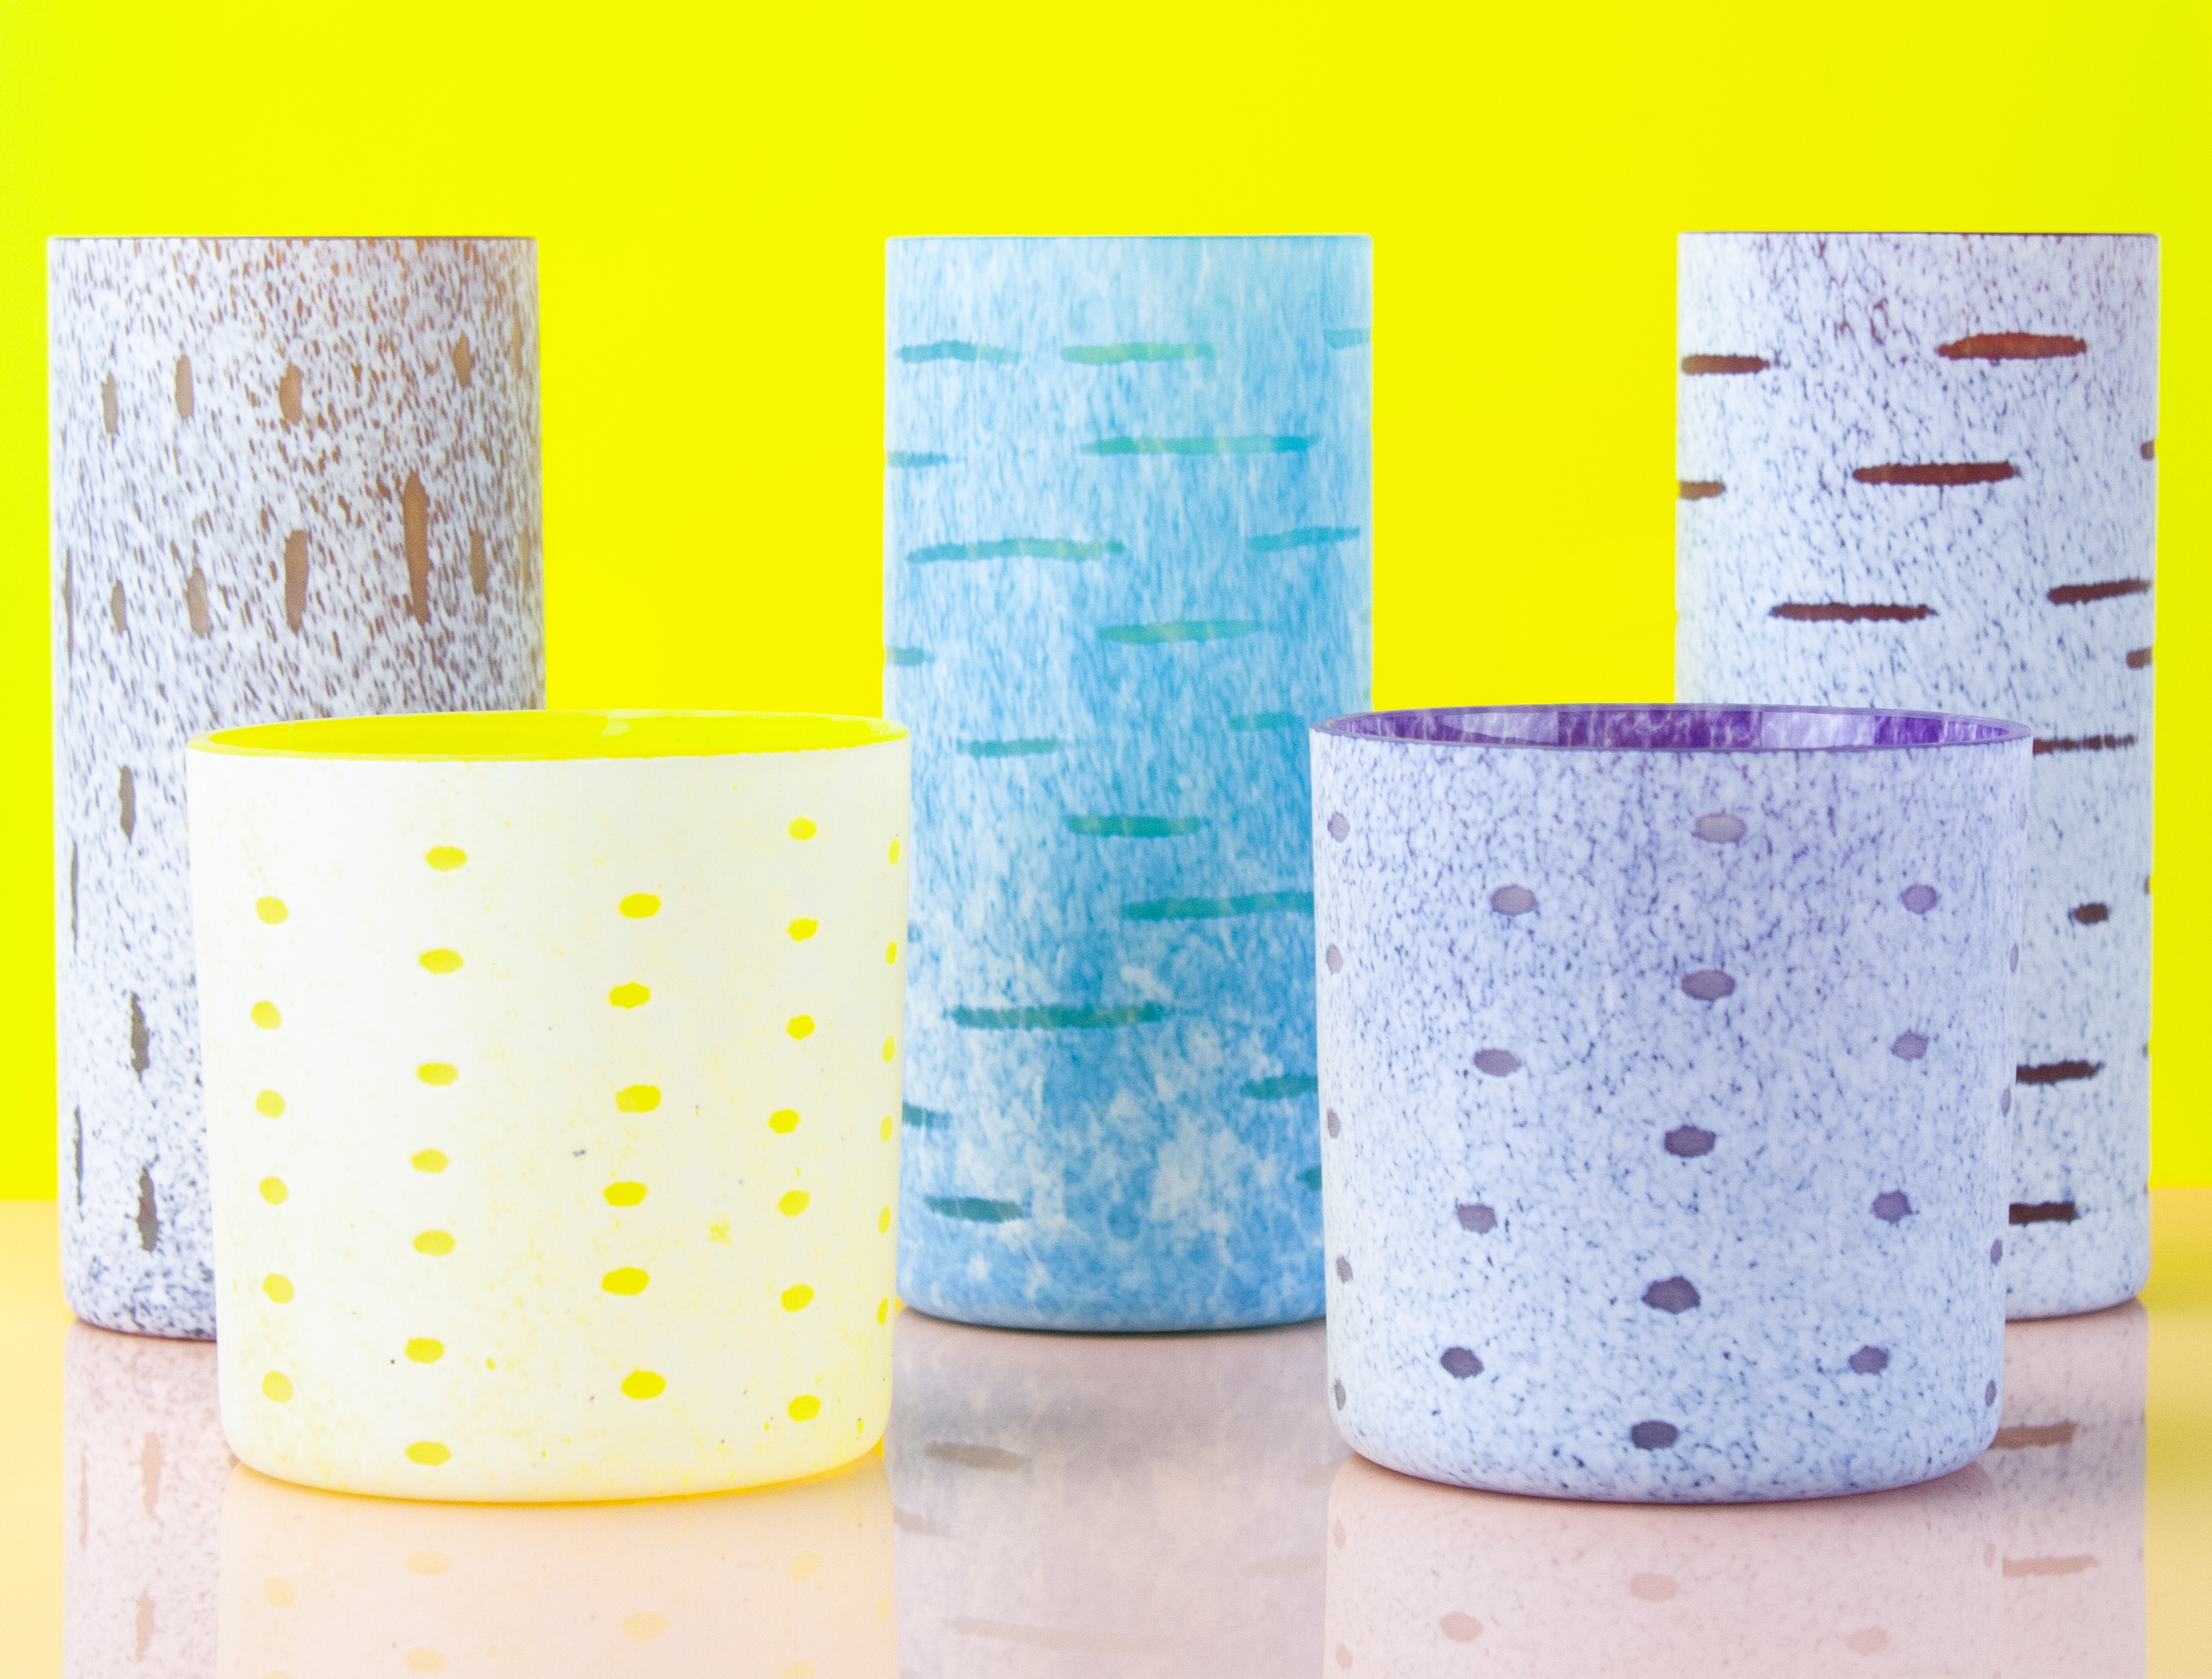 Five brightly colored glass cups, two small, two tall, in front of a bright yellow background.